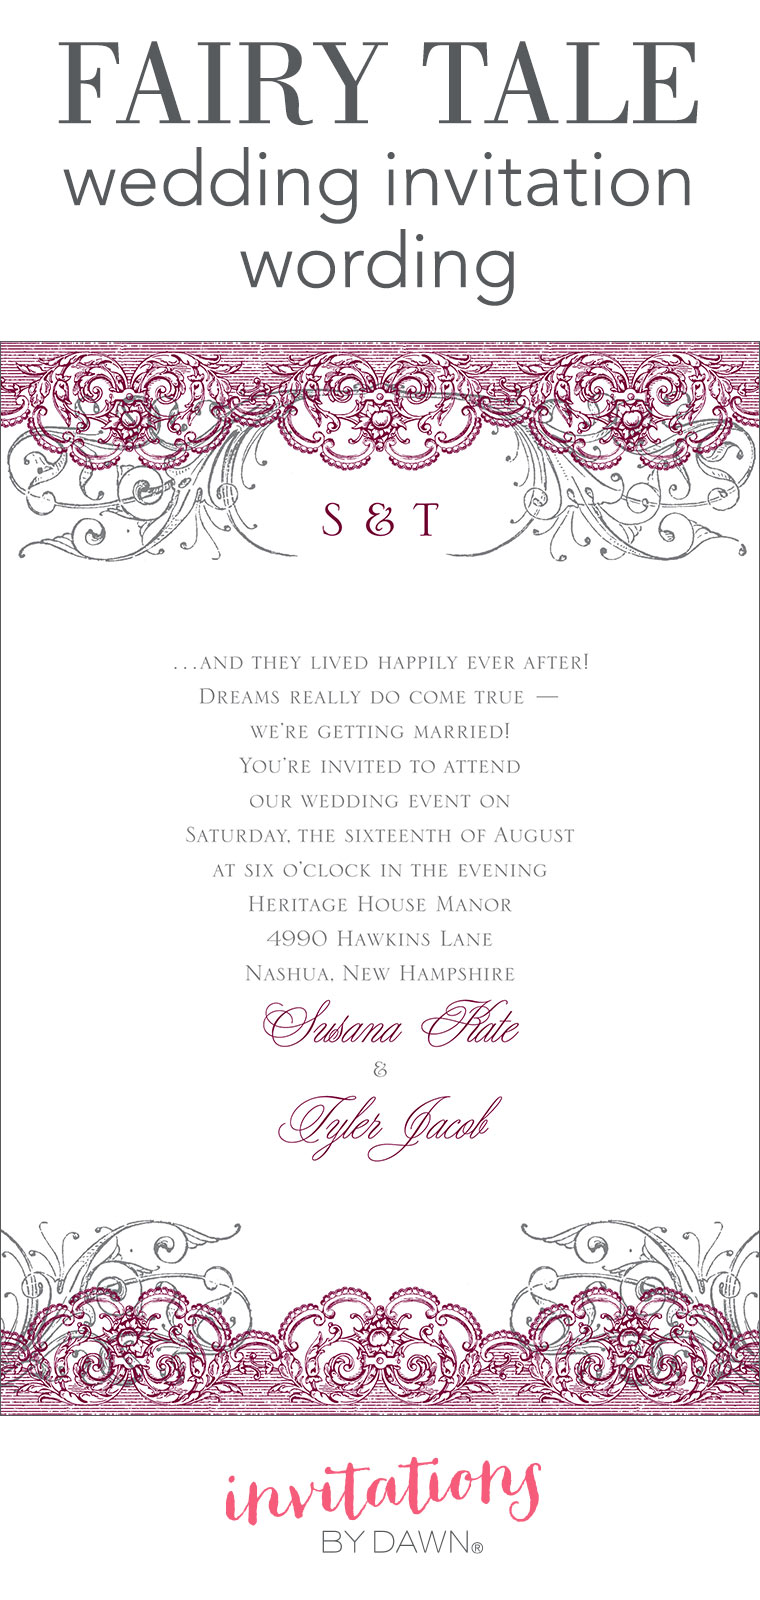 Fairy Tale Wedding Invitation Wording  Engagement Invitation Words